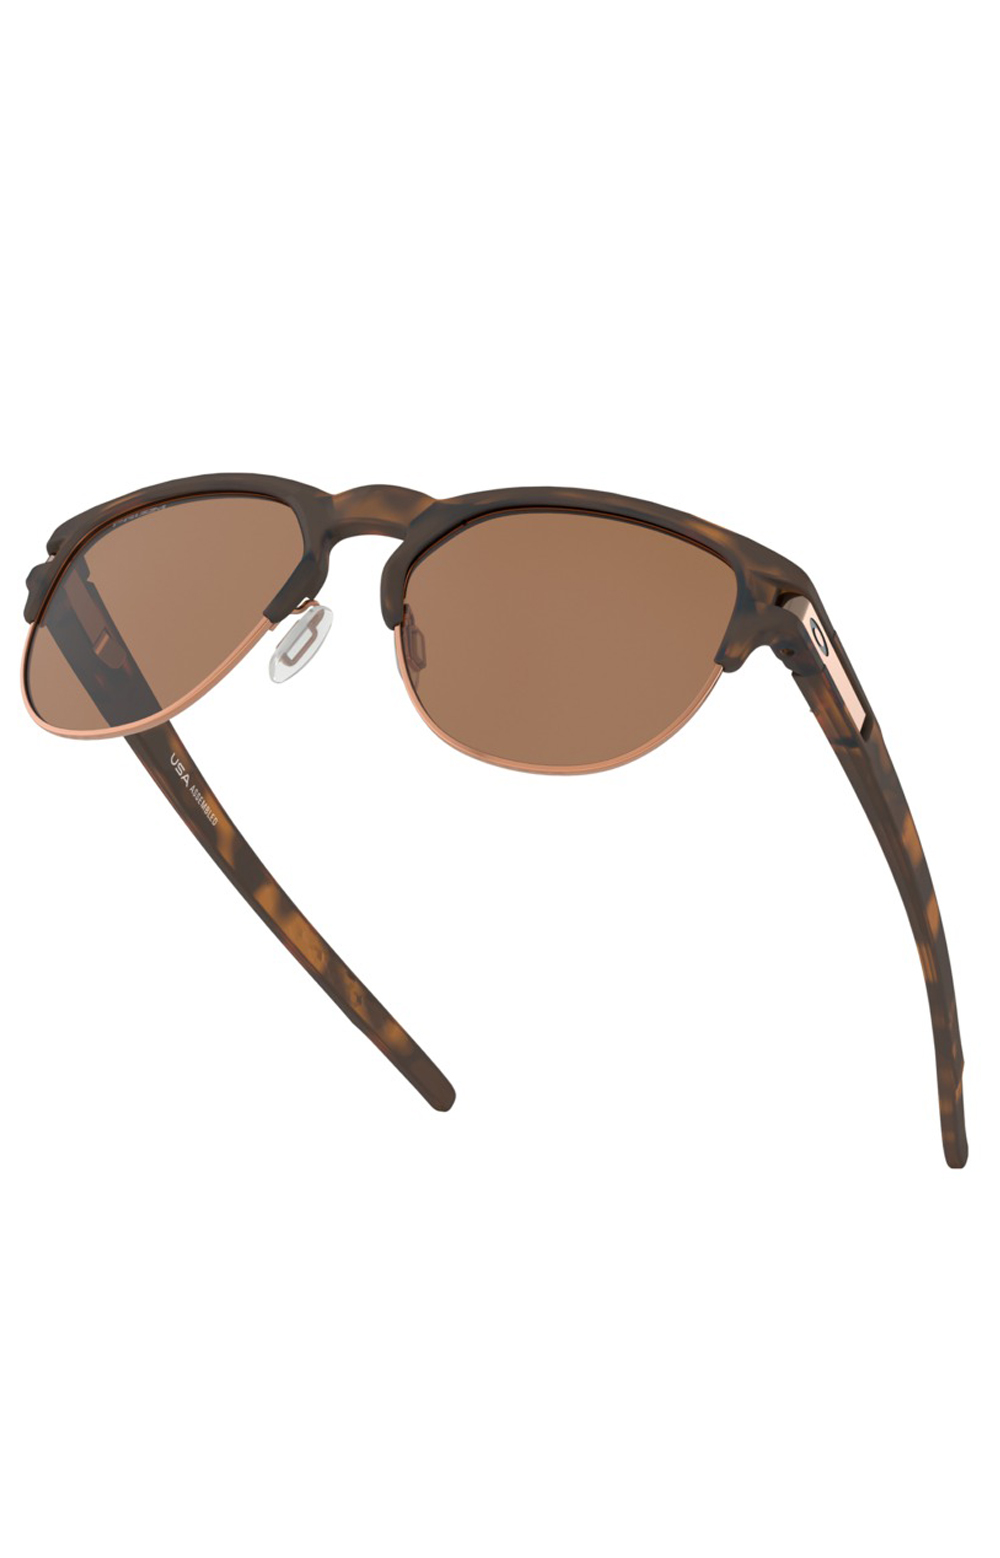 09140ba0f8e ... Thumbnail 1 Thumbnail 1 · Latch Key L Sunglasses - Matte Brown Tortoise Prizm  Tungsten